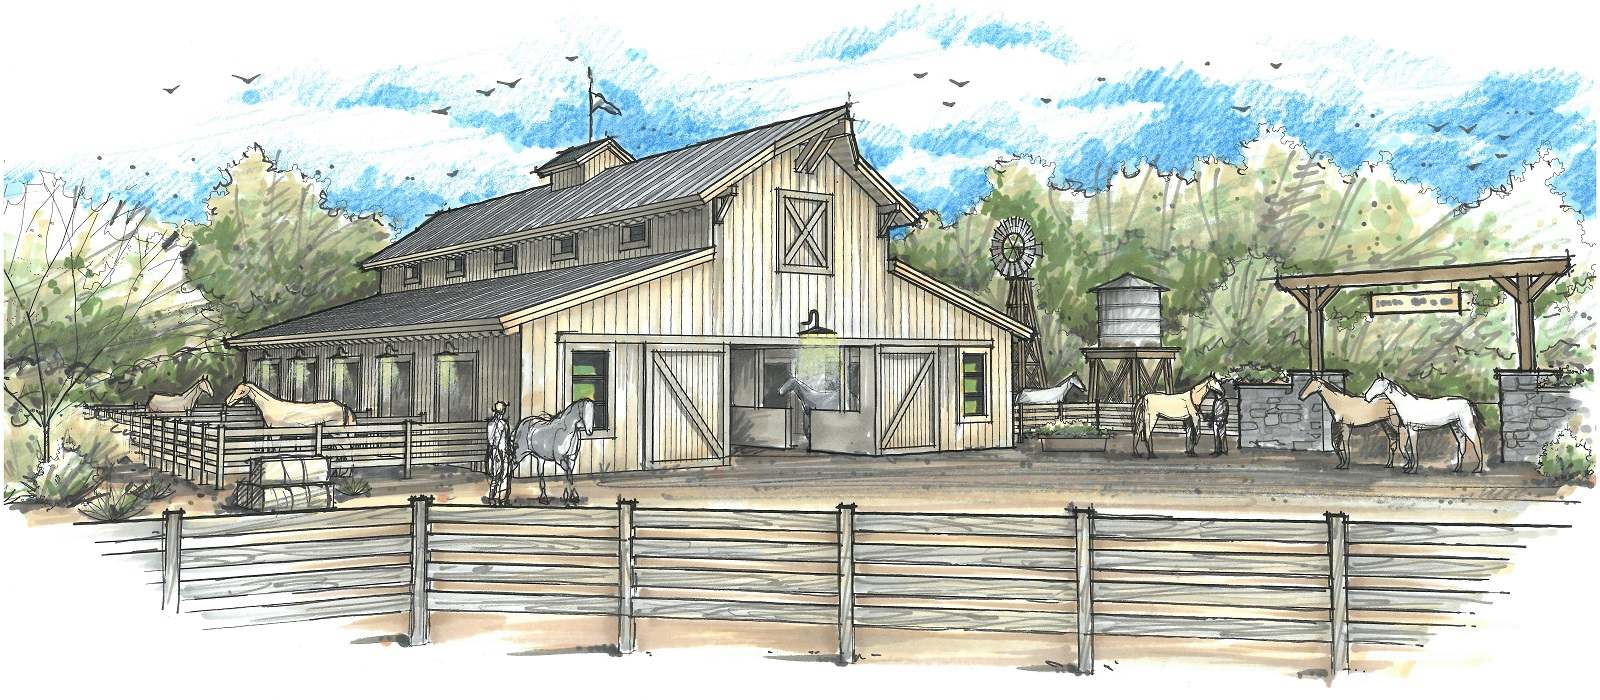 Horse Stables and Boarding - Silver Mountain Ranches Sustainable Living Community